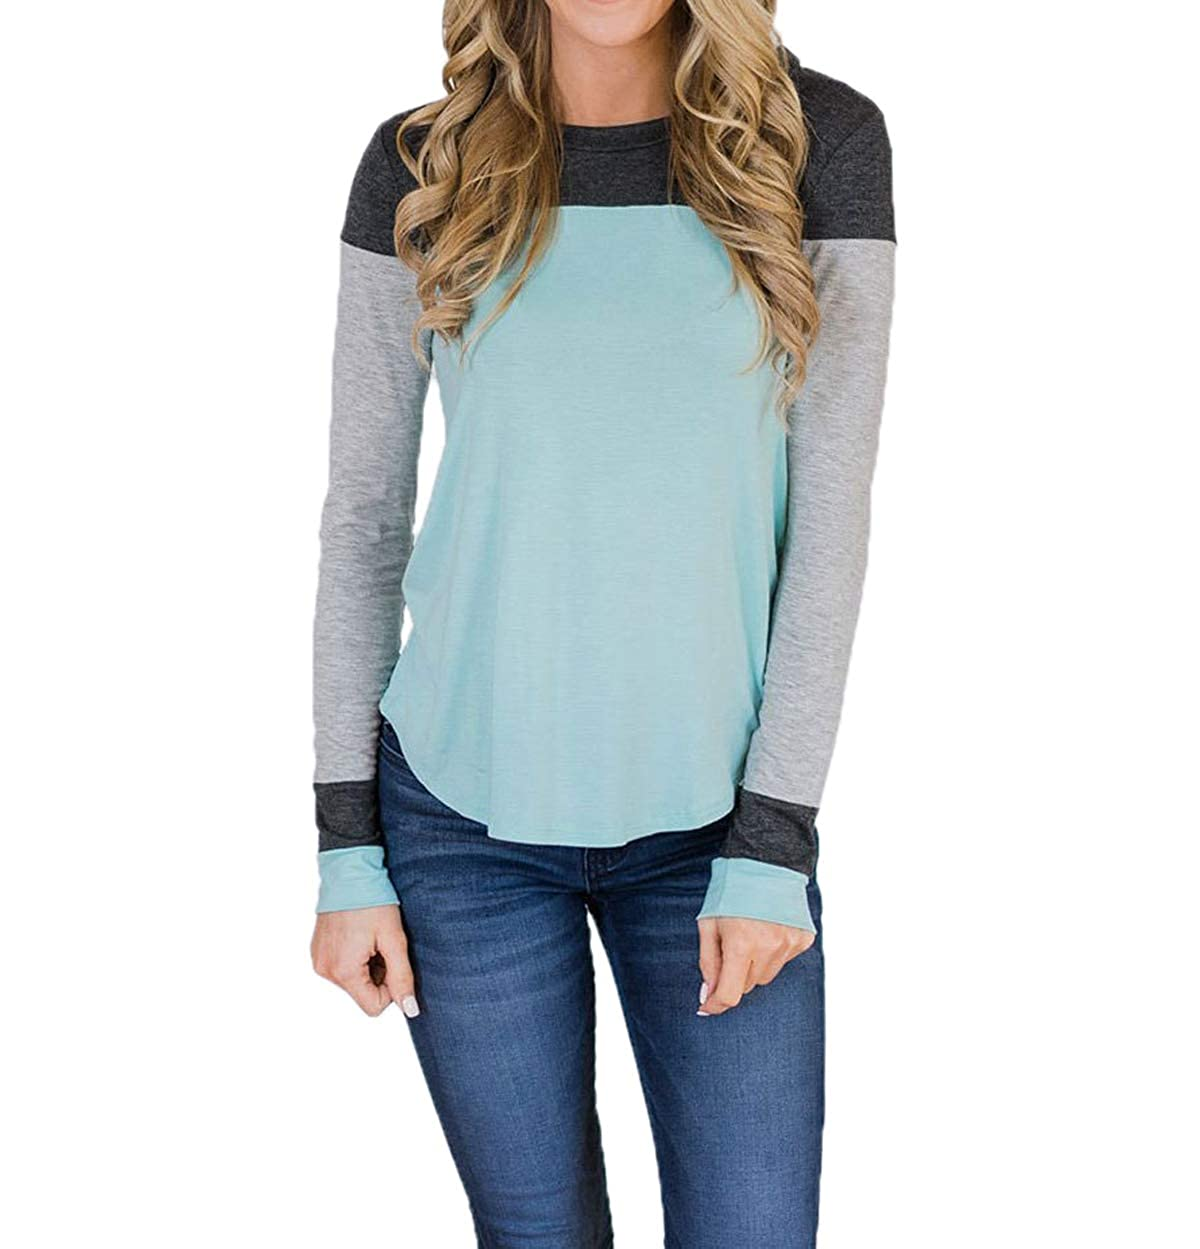 Femmes Hauts Fashion Patchwork T-Shirts Blouse Pulls Sweat-Shirts Col Rond  Tops à Manches Longues Tees Jumpers dbf3a2b725c